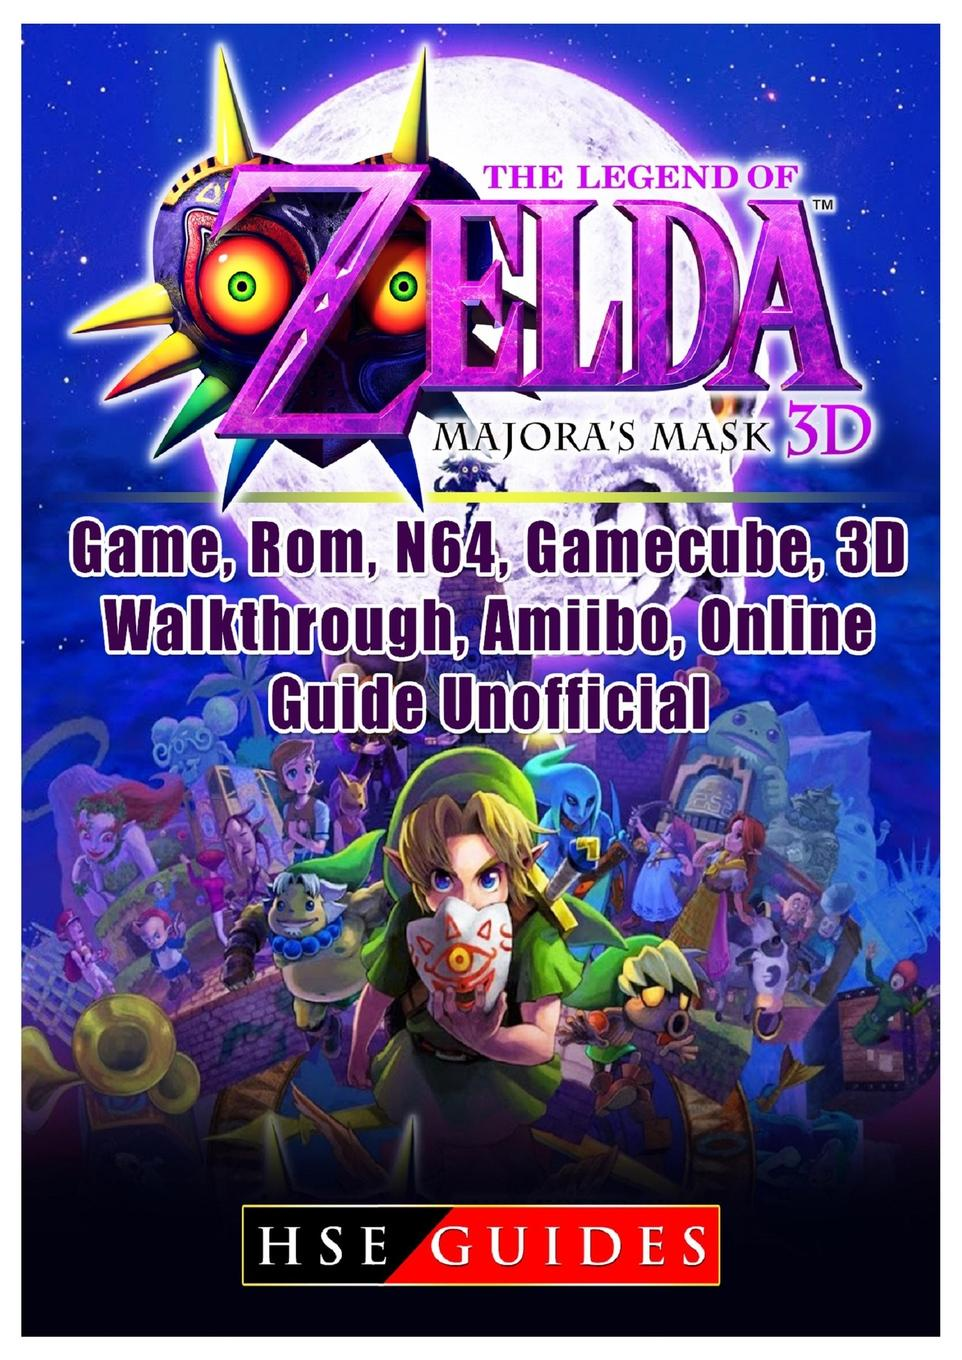 HSE Guides The Legend of Zelda Majoras Mask 3D, Game, Rom, N64, Gamecube, 3D, Walkthrough, Amiibo, Online Guide Unofficial advanced game controller for gamecube ngc and wii black